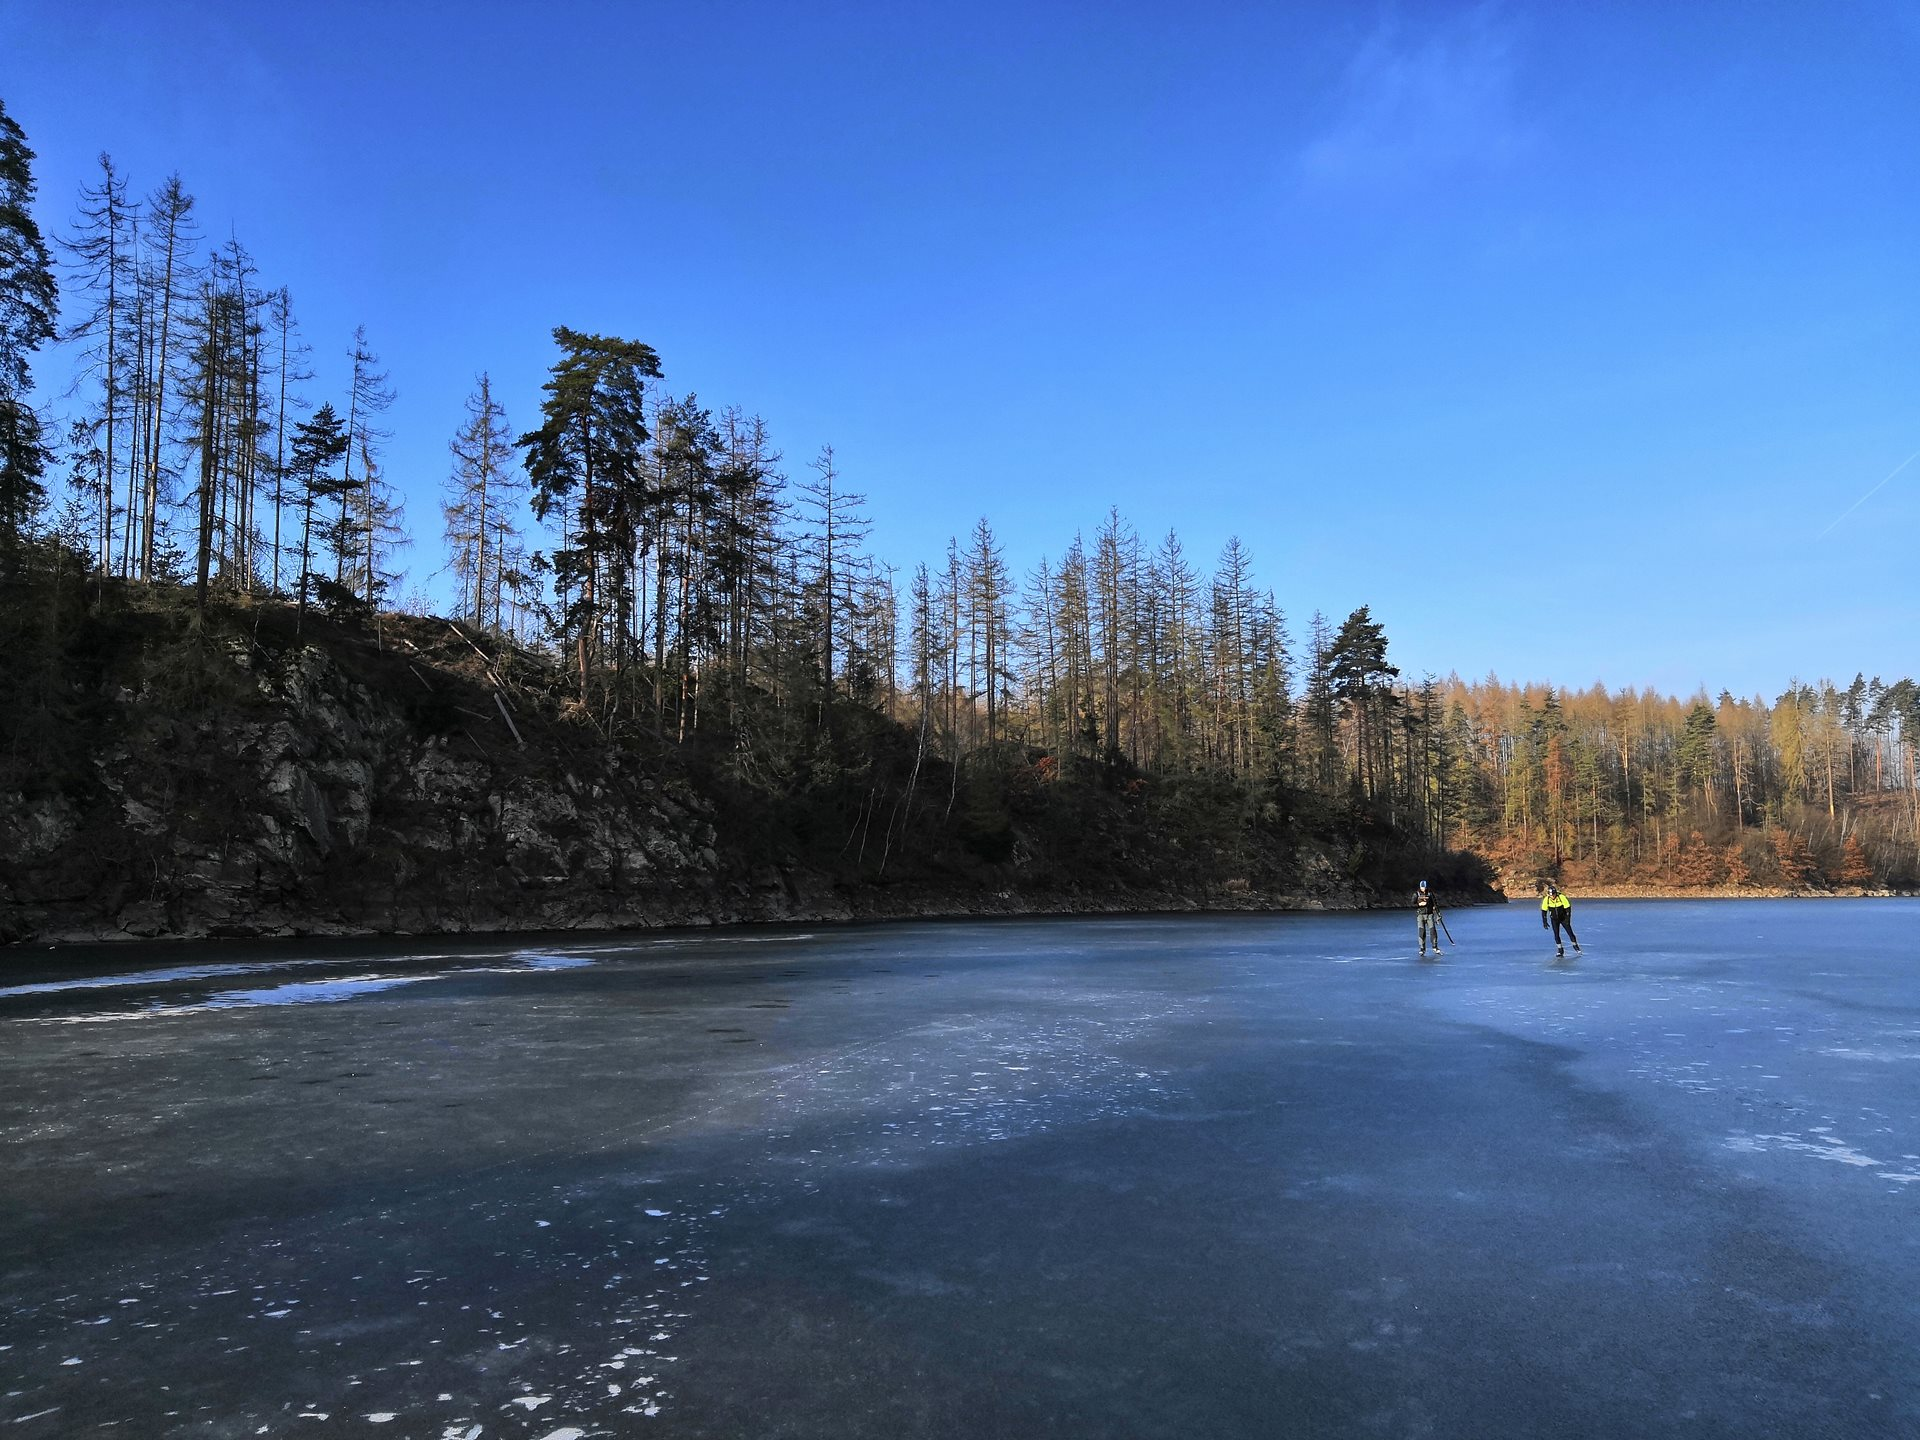 Czechs skate on large natural water areas